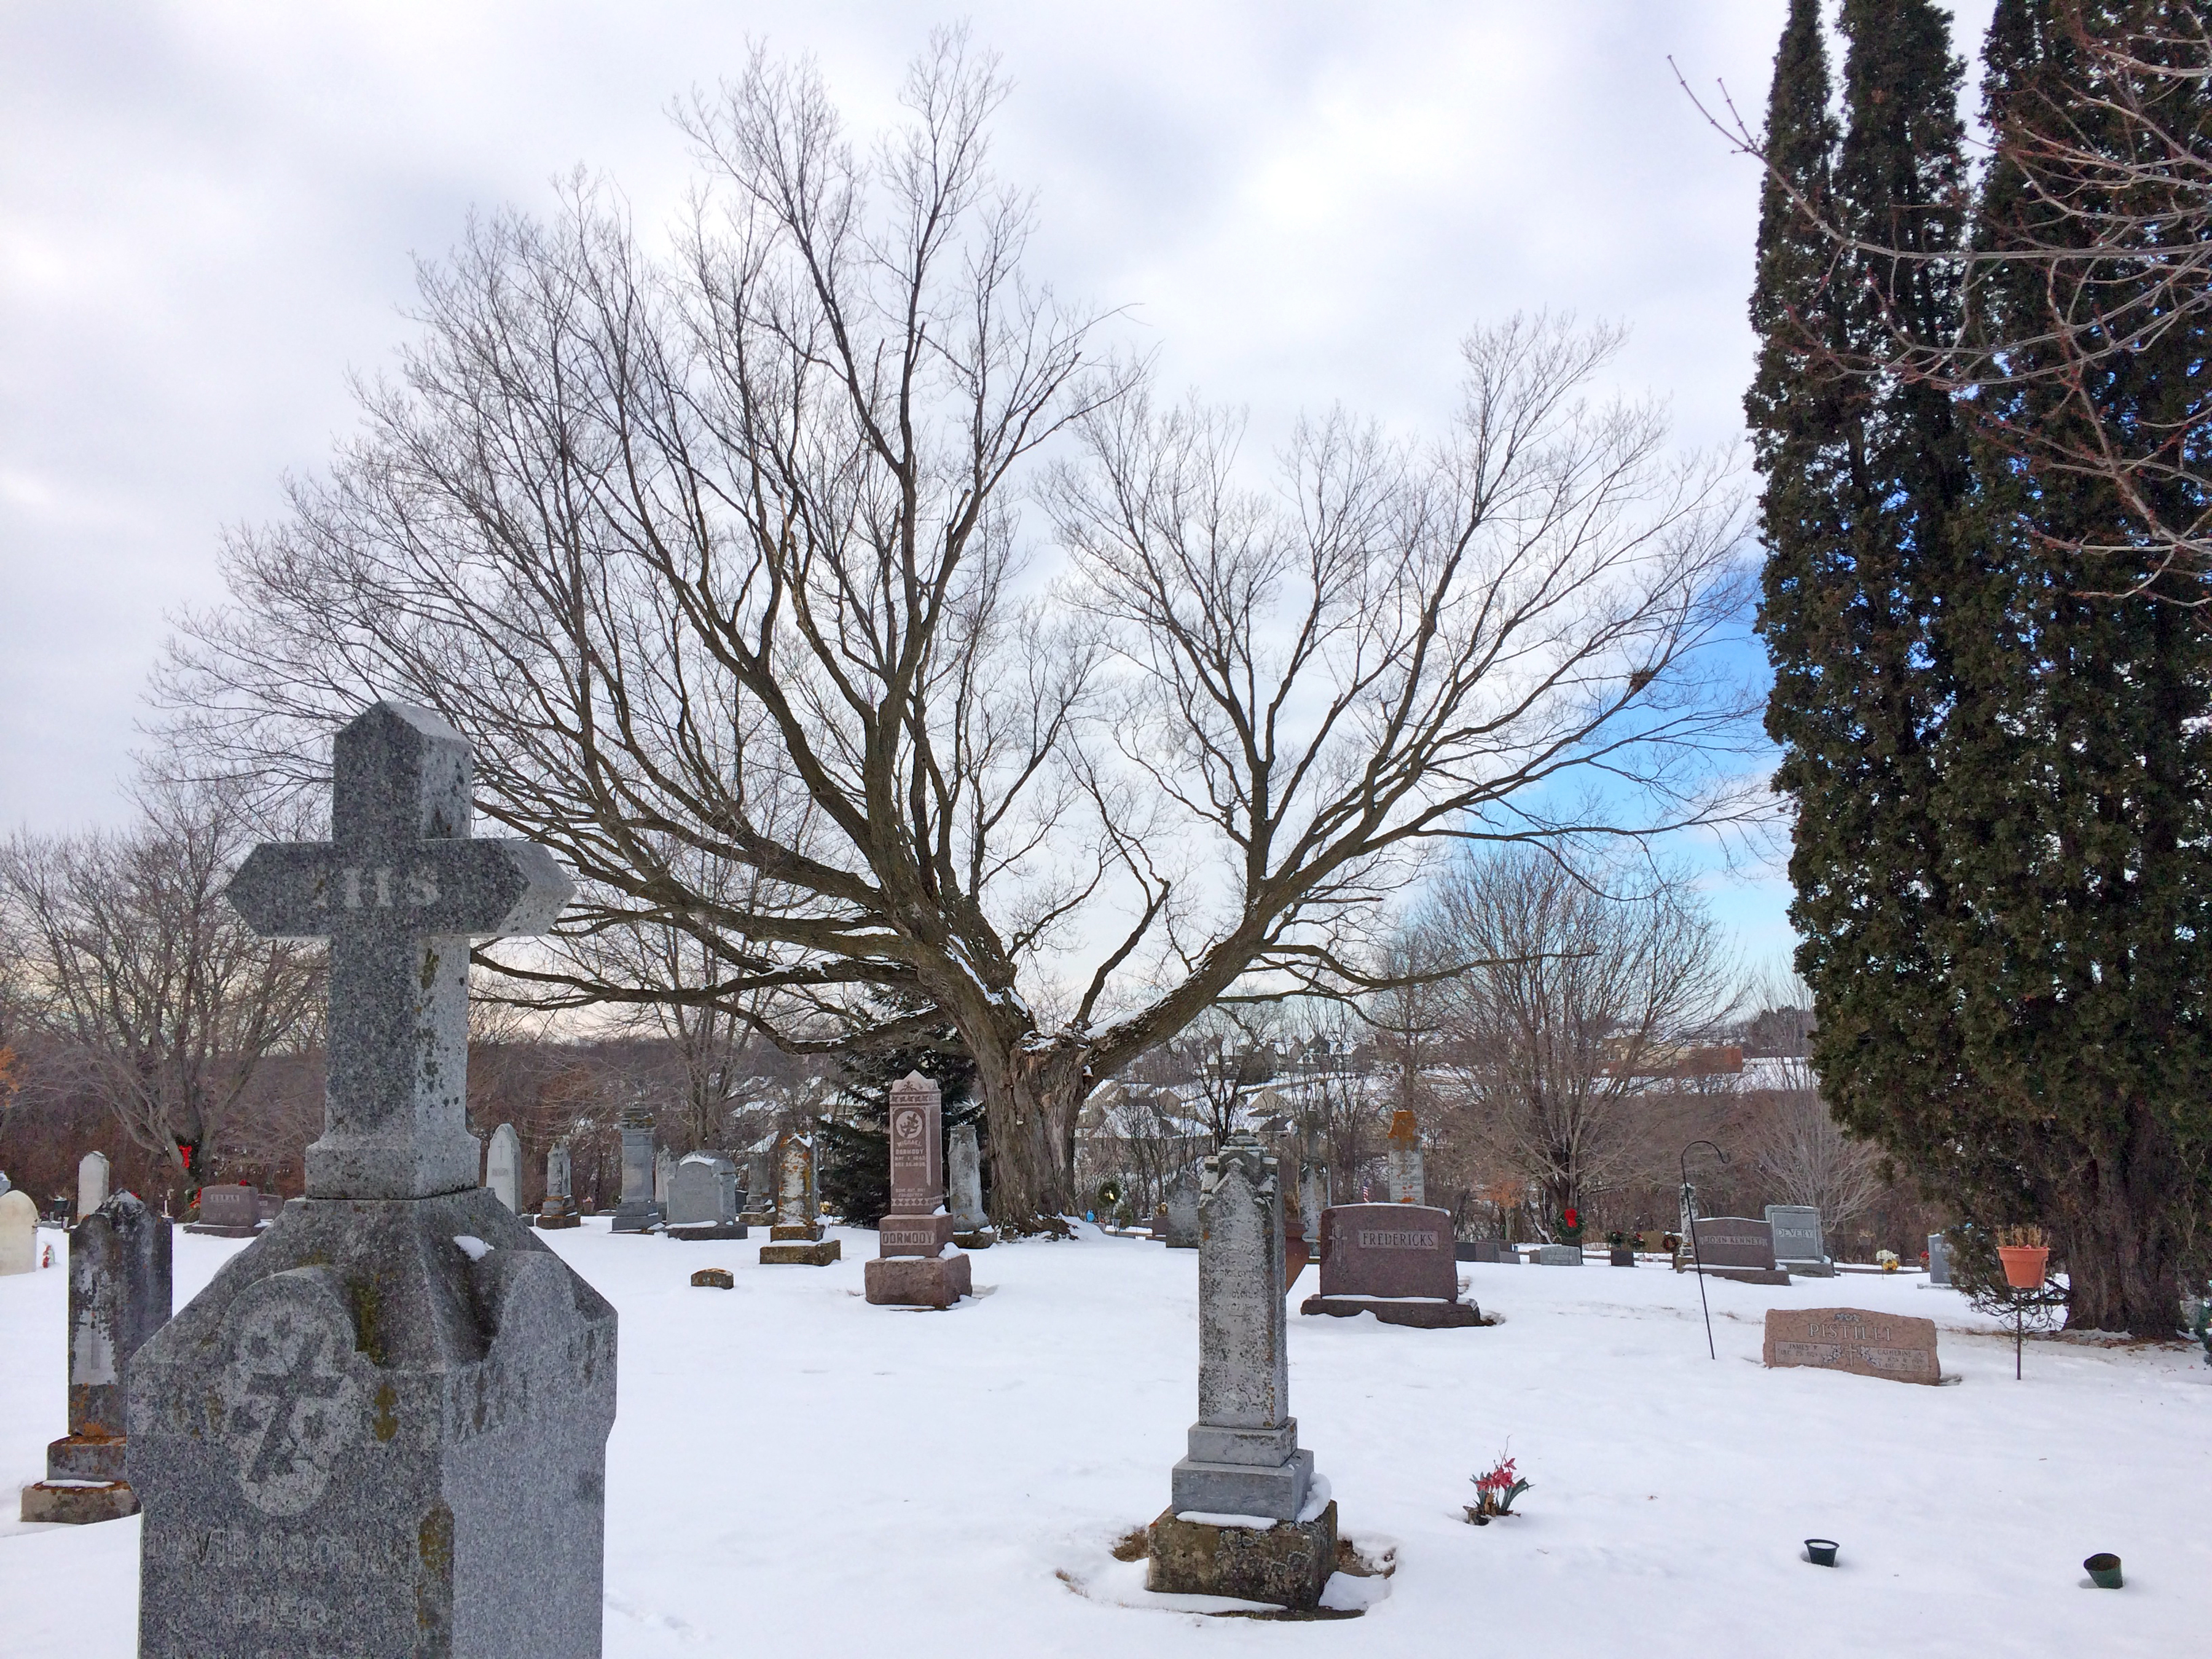 The cemetery is centered around a tree known as the Annie Donahue Maple.